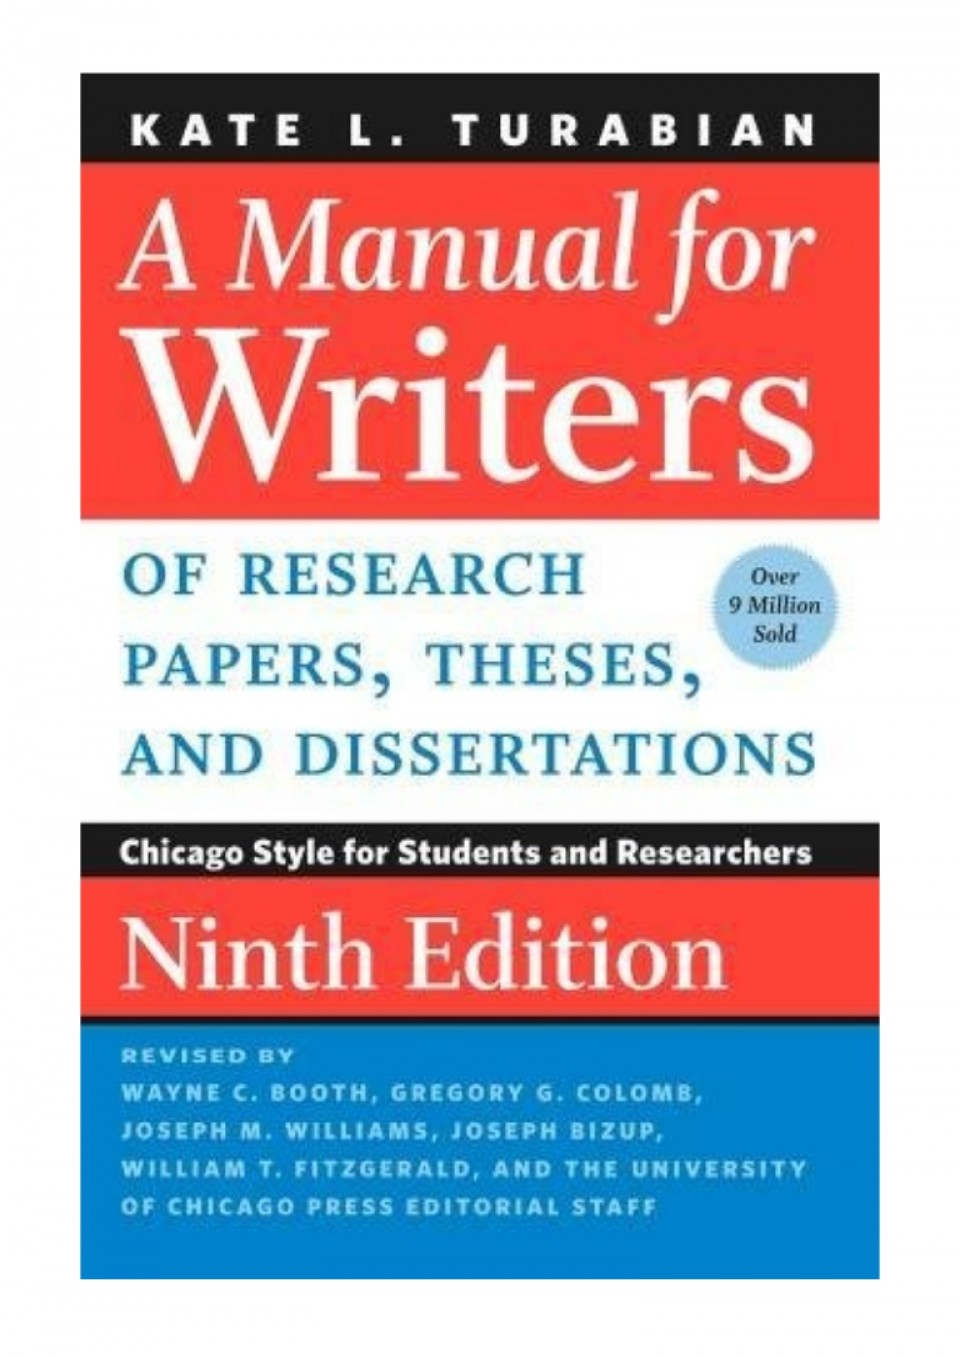 010 Manual For Writers Of Research Papers Theses And Dissertations Paper 022643057x Amanualforwritersofresearchpapersthesesanddissertationsnintheditionbykatel Thumbnail Magnificent A Amazon 9th Edition Pdf 8th 13 960